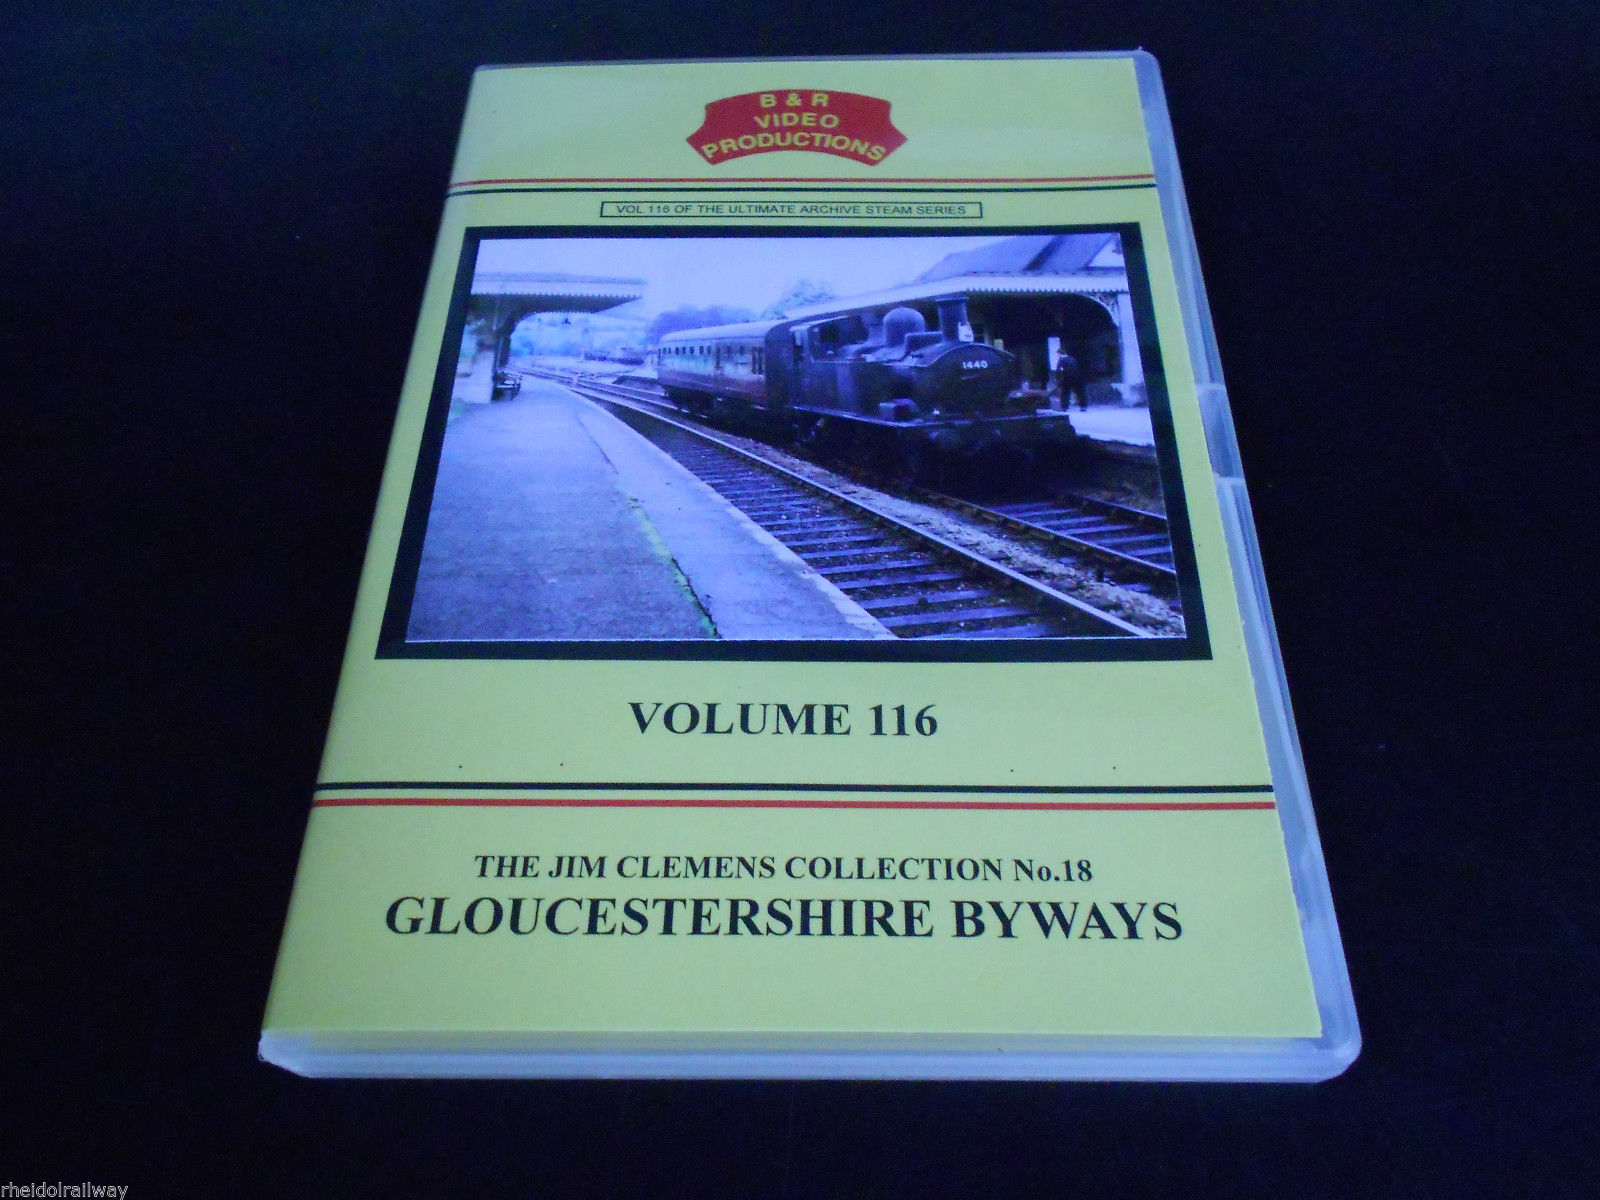 Cheltenham, Kemble, Tetbury, Chalford, Gloucestershire Byways B&R Vol 116 DVD - The Vale of Rheidol Railway